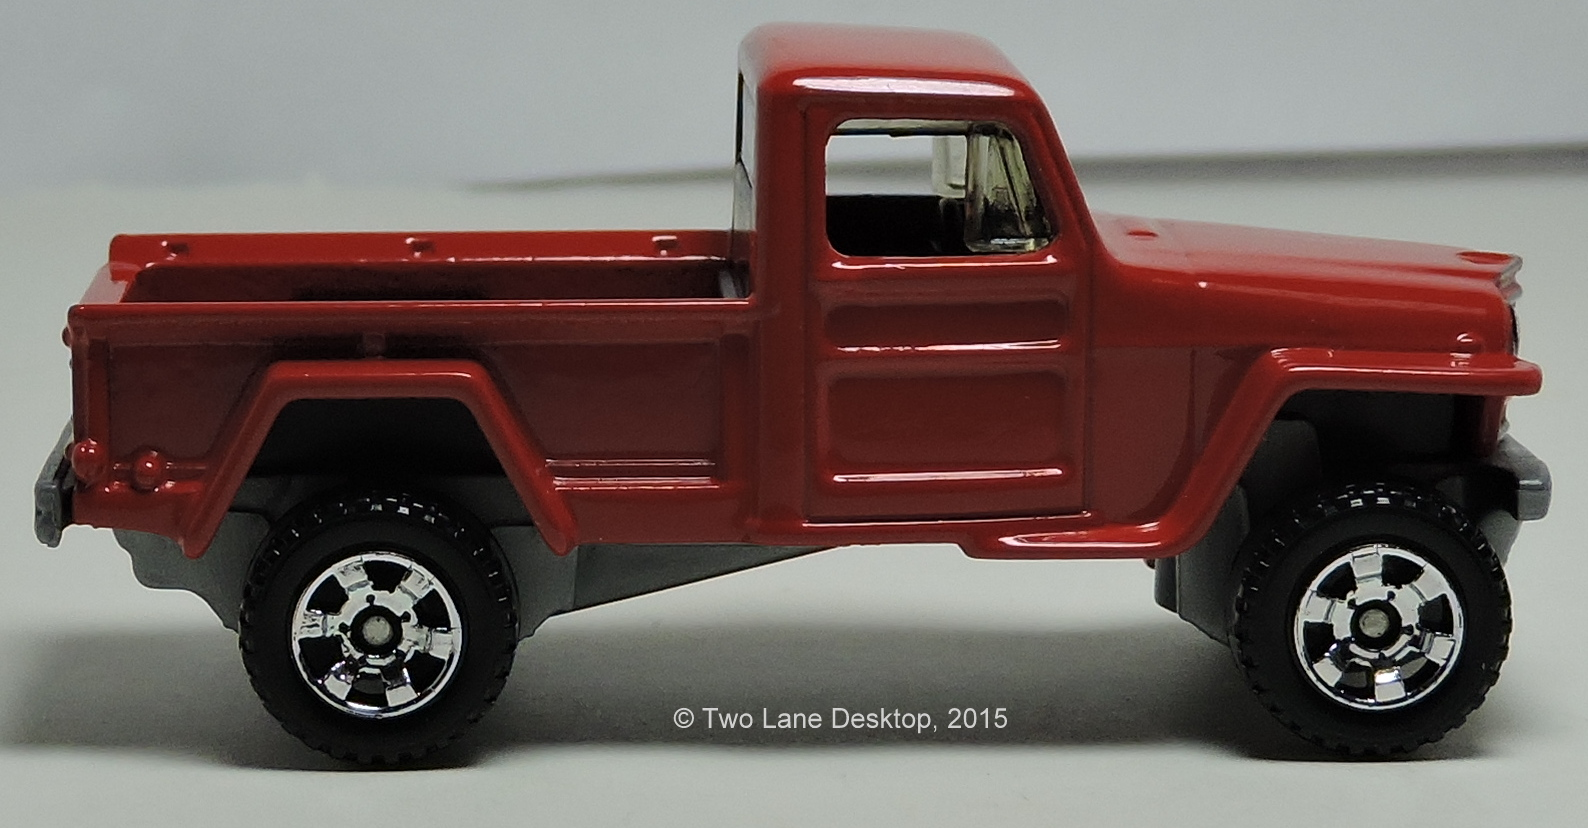 Image 11 Of 50 Jeep Heritage 1950 Willys Pickup Truck The Two Lane Desktop Matchbox 4x4